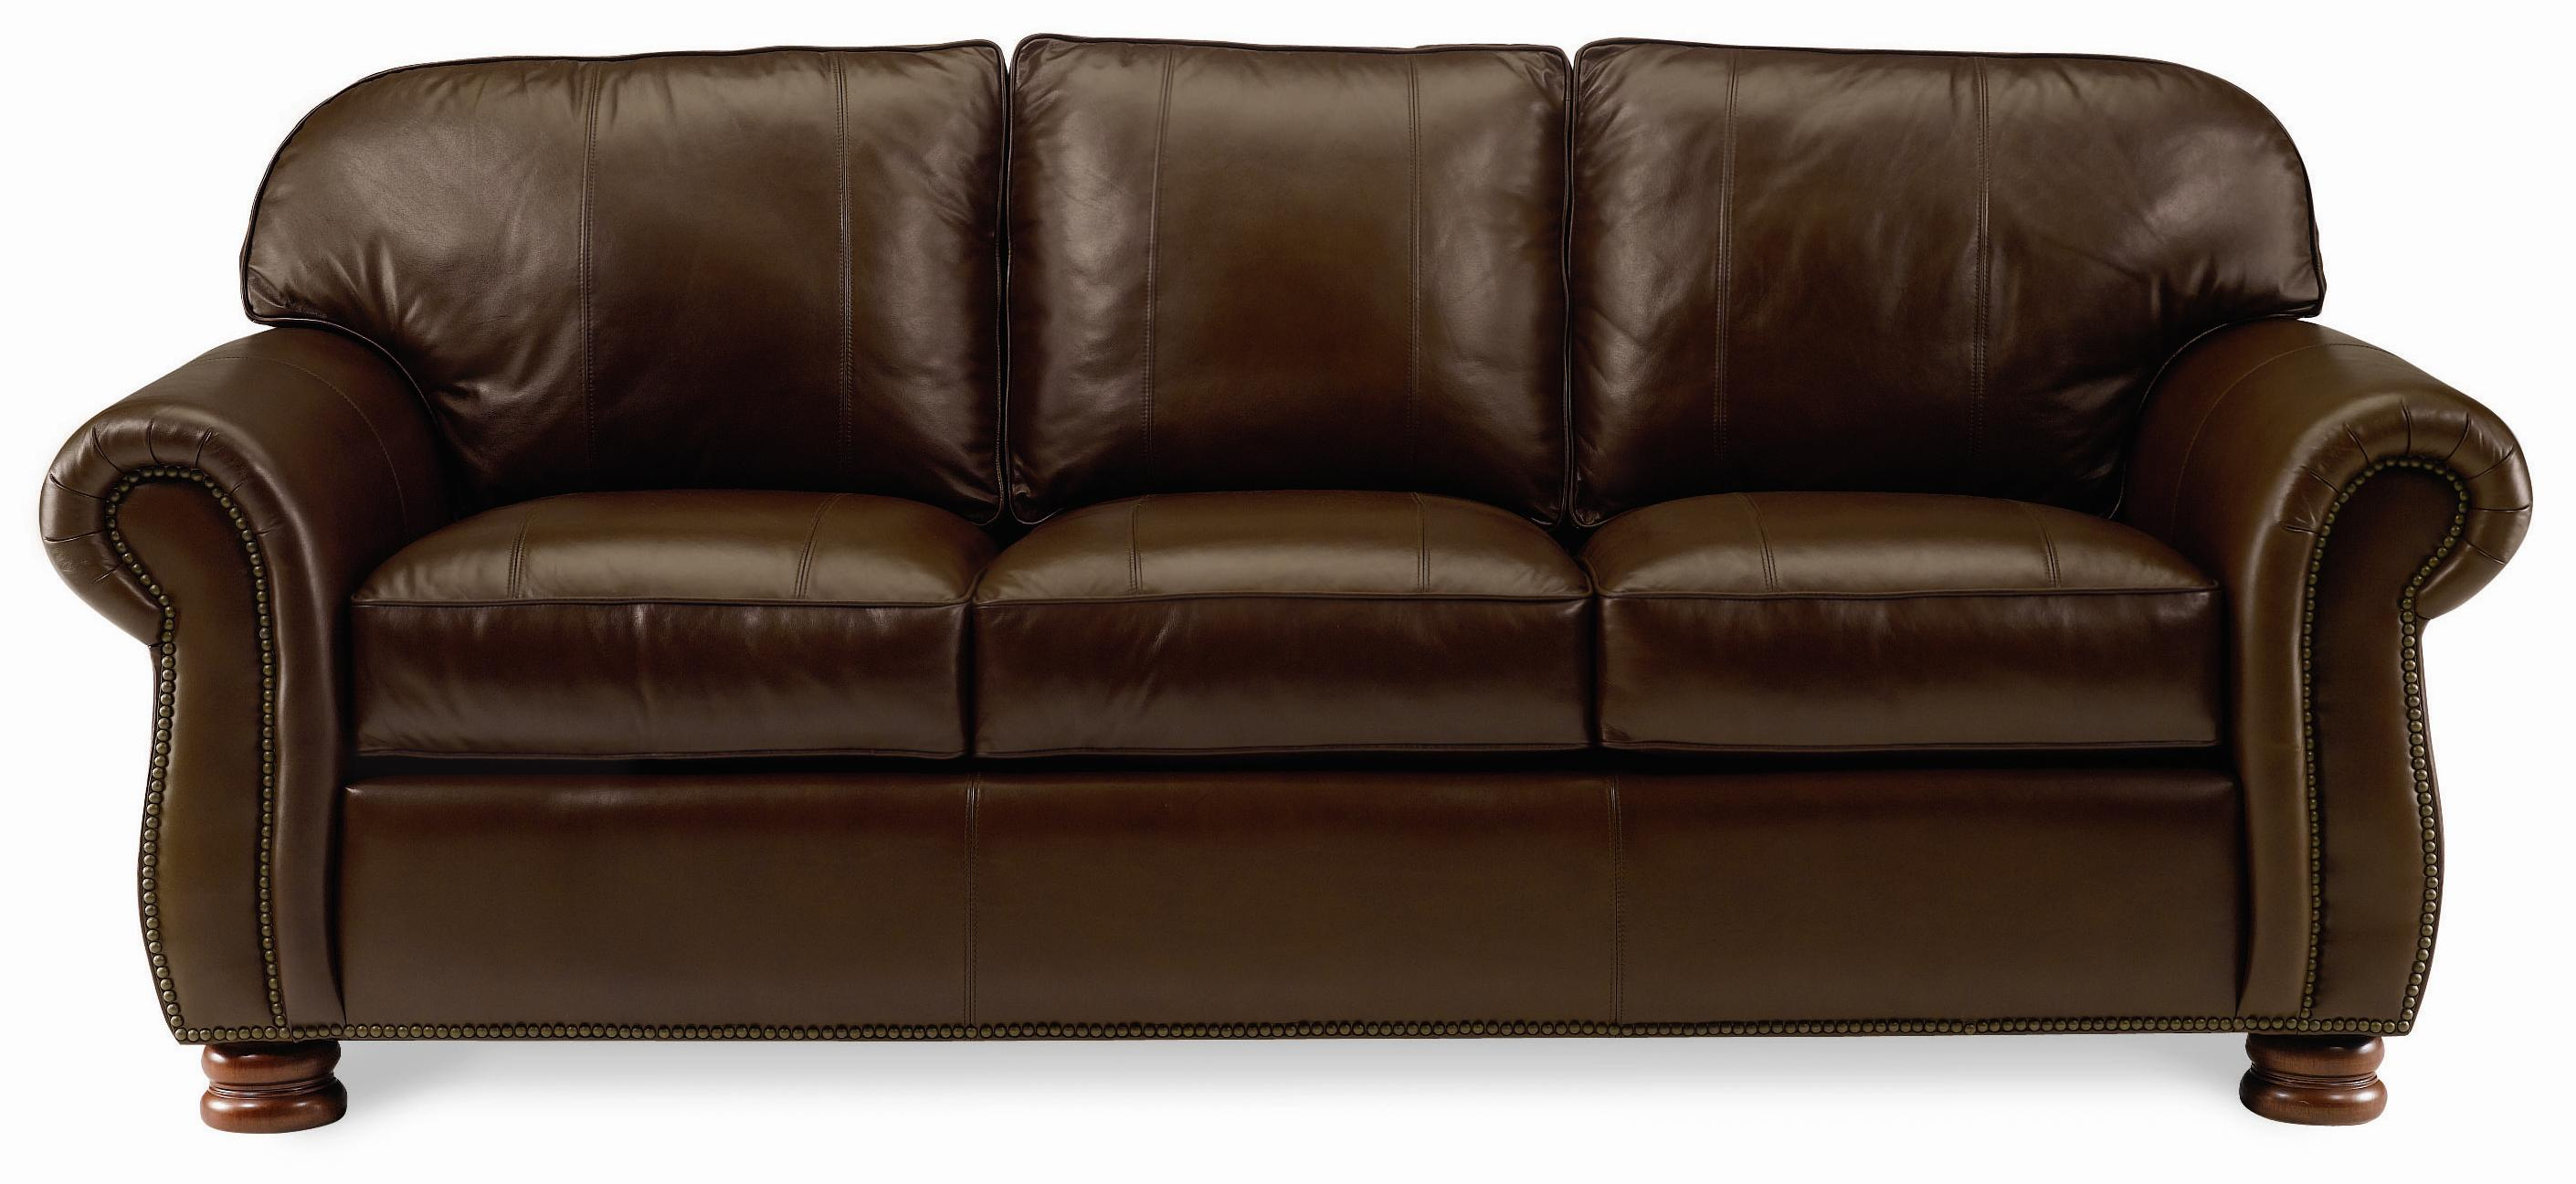 Thomasville Leather Choices Benjamin Select 3